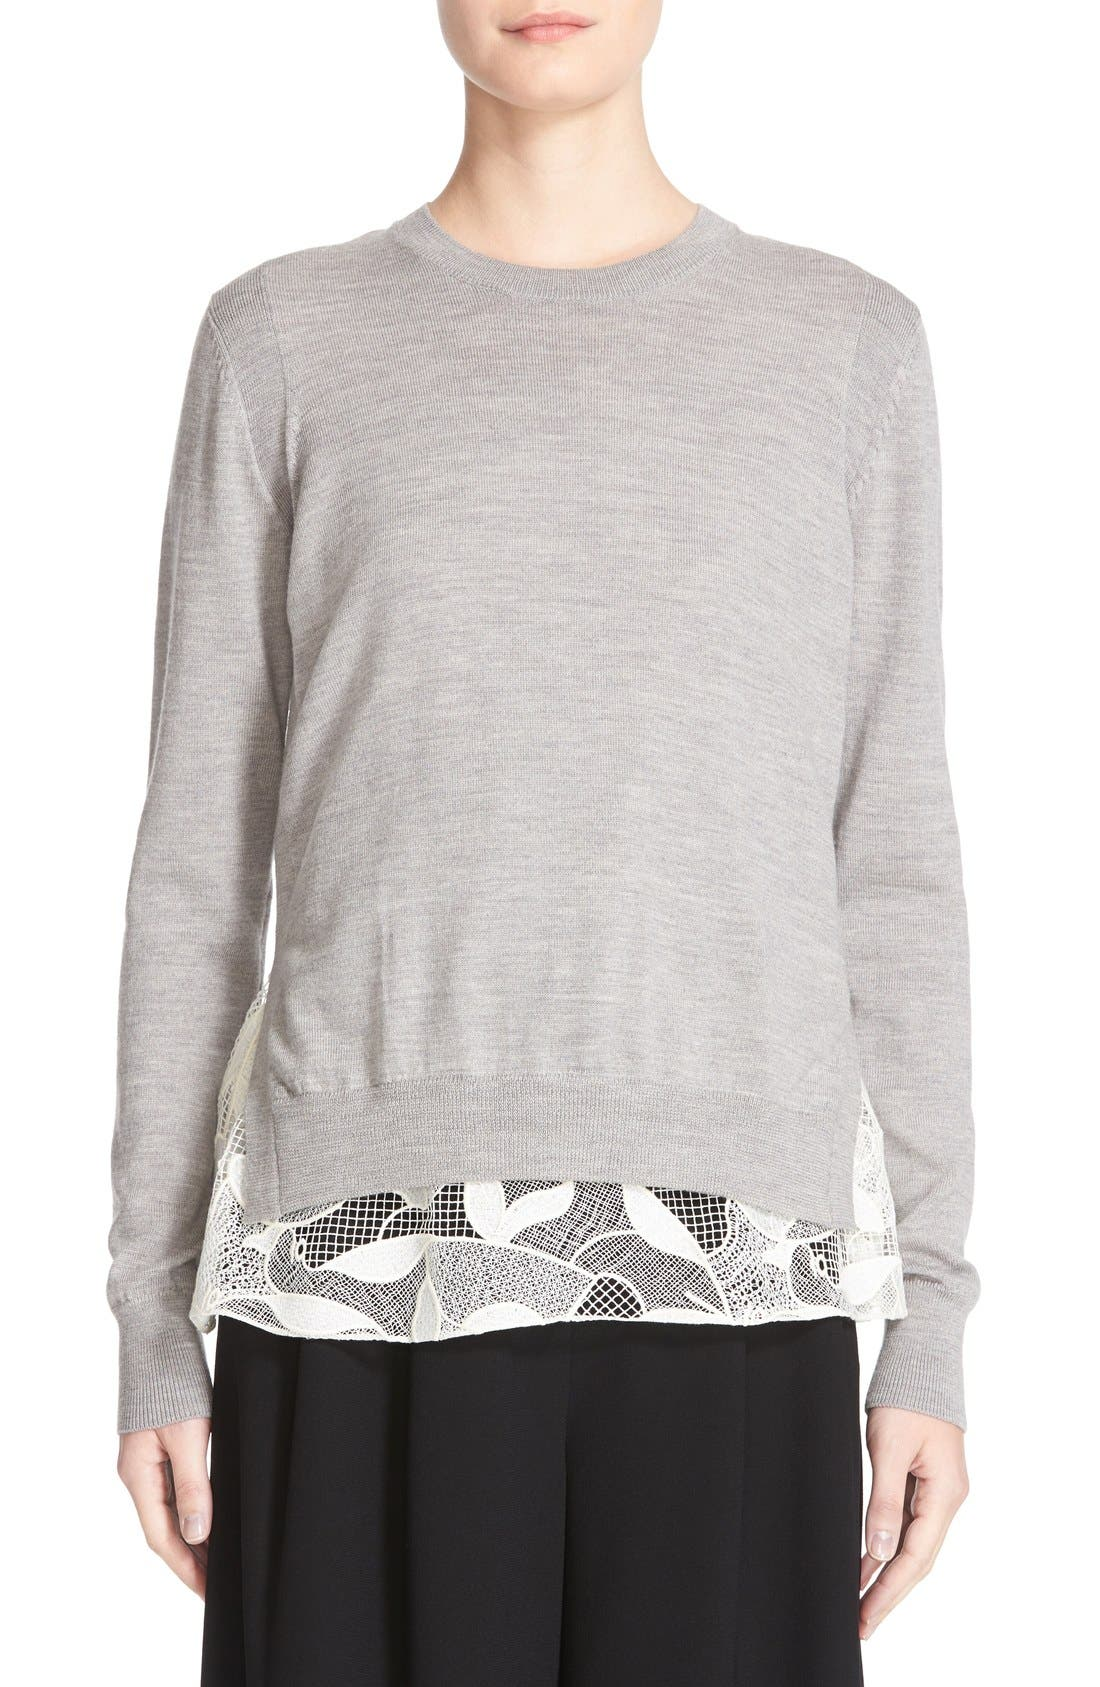 GREY JASON WU Lace Hem Merino Wool Pullover